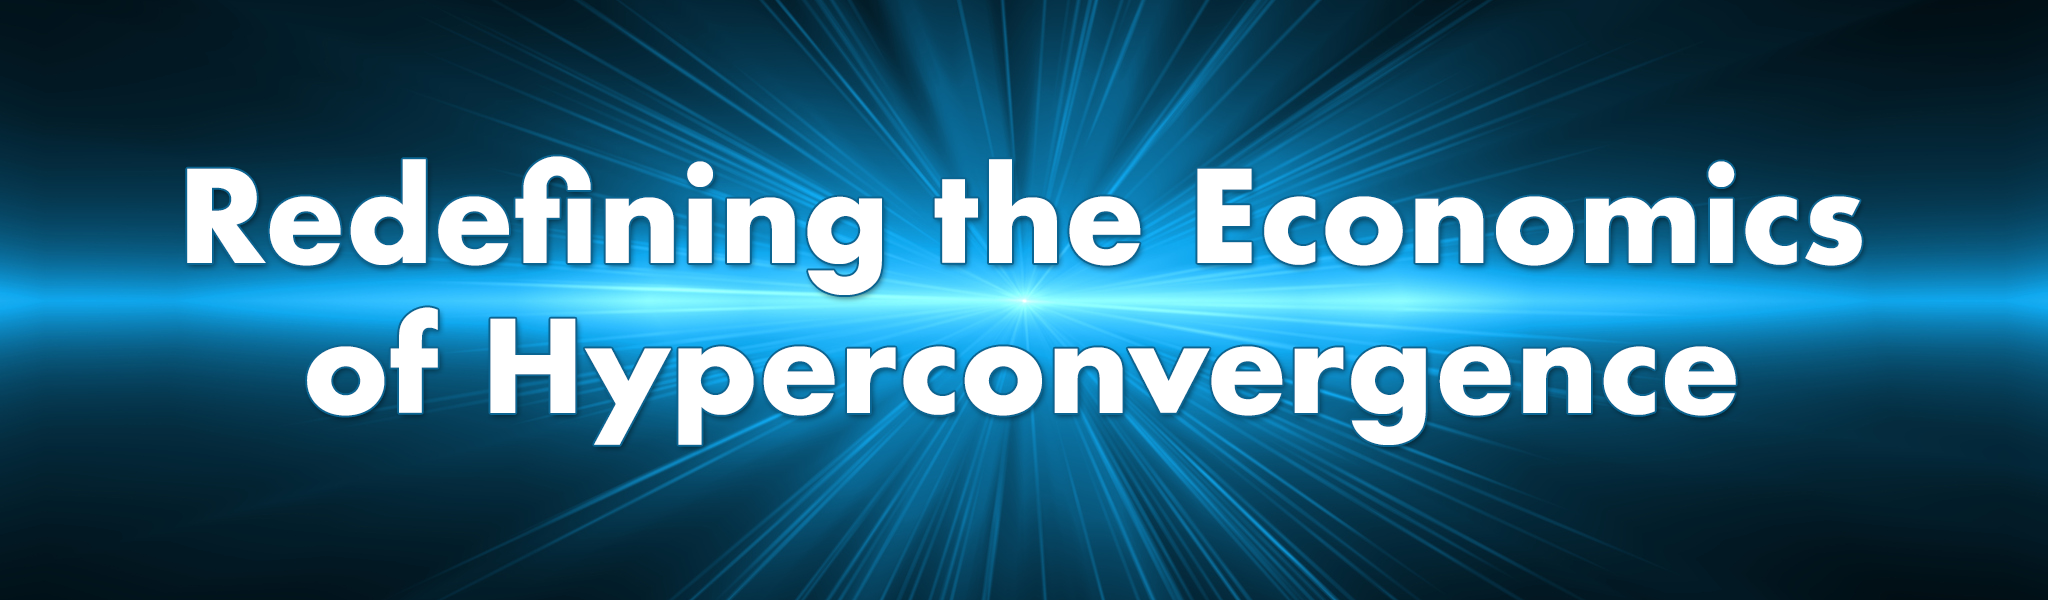 Redefining-Hyperconvergence.png